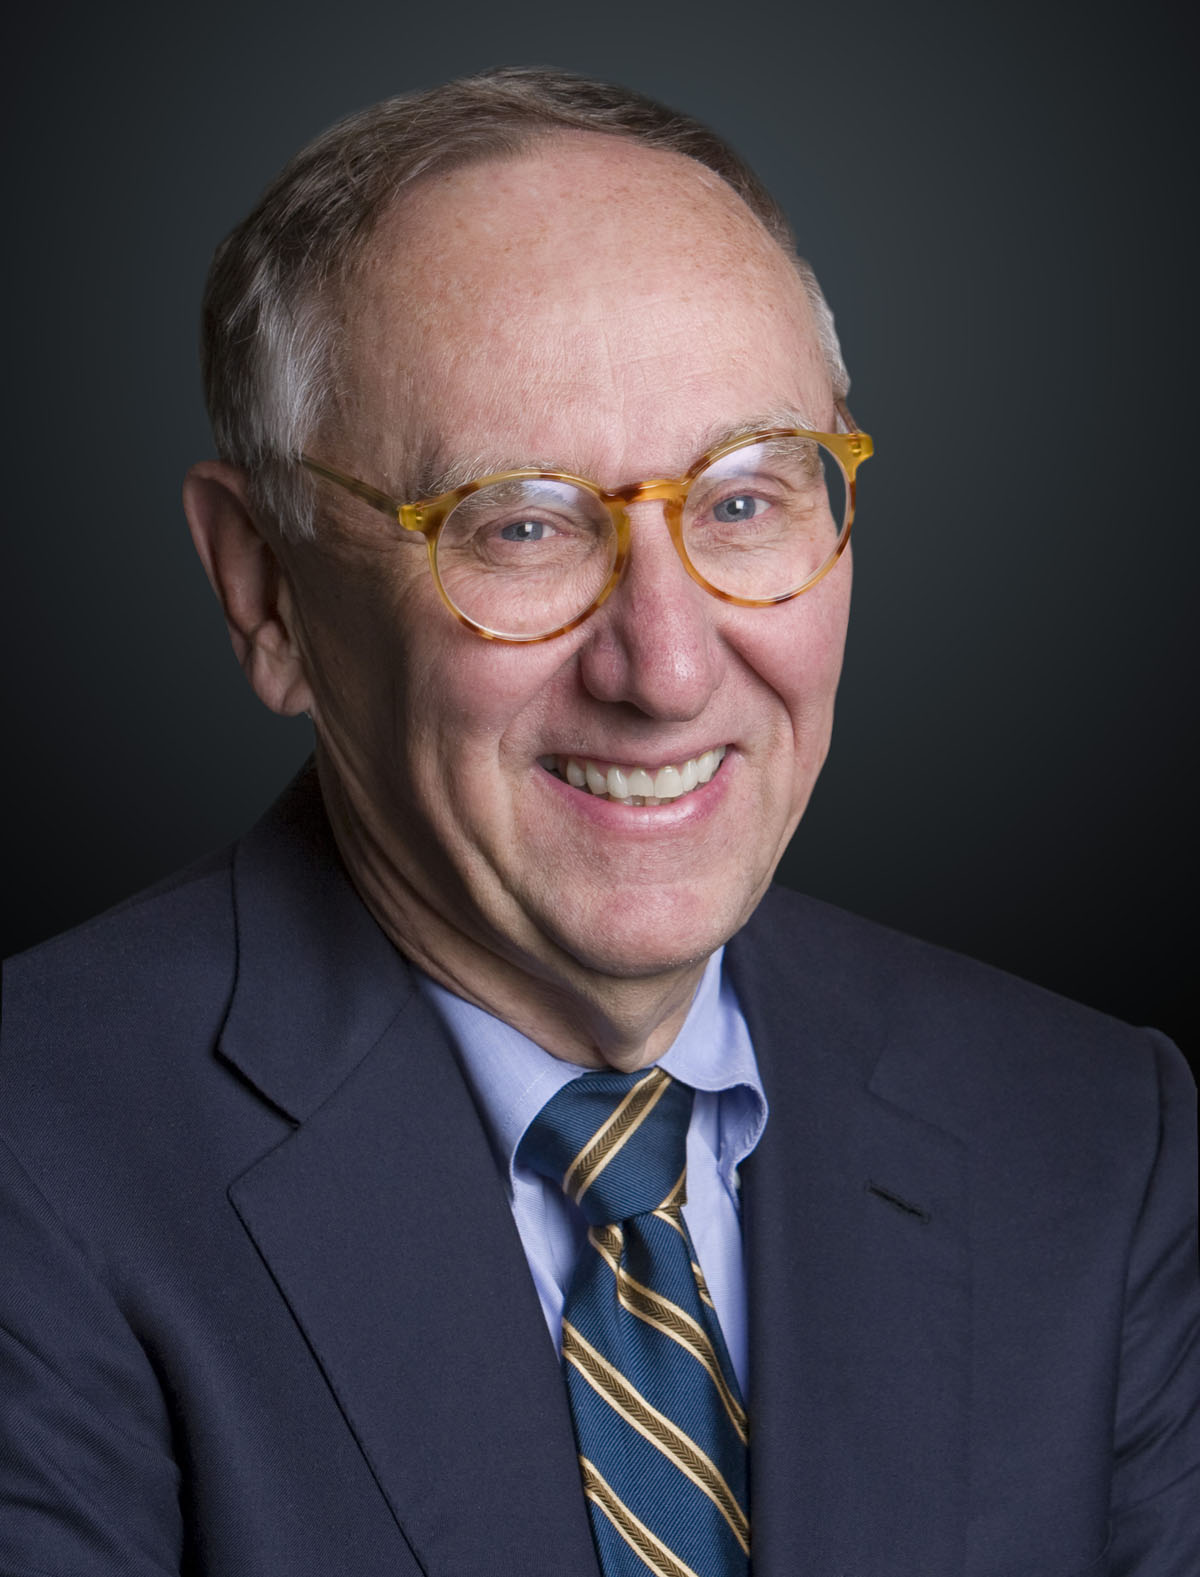 Esri president Jack Dangermond will be delivering the keynote speech at the world's largest cartographic conference.